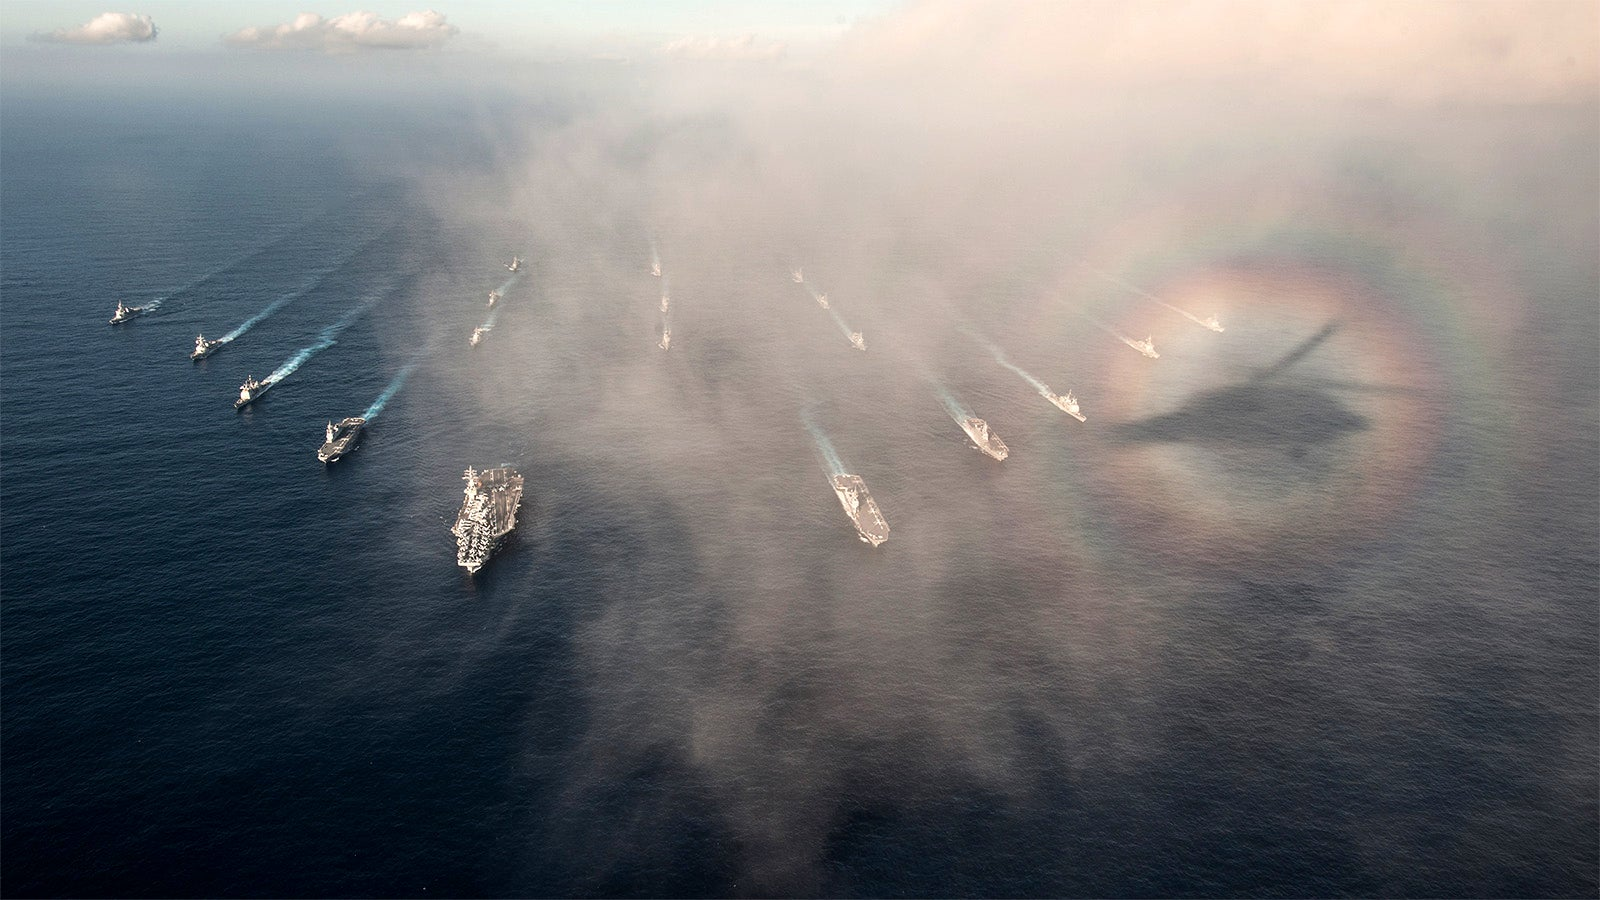 A Rare Optical Phenomenon Makes This Naval Parade Look Magical